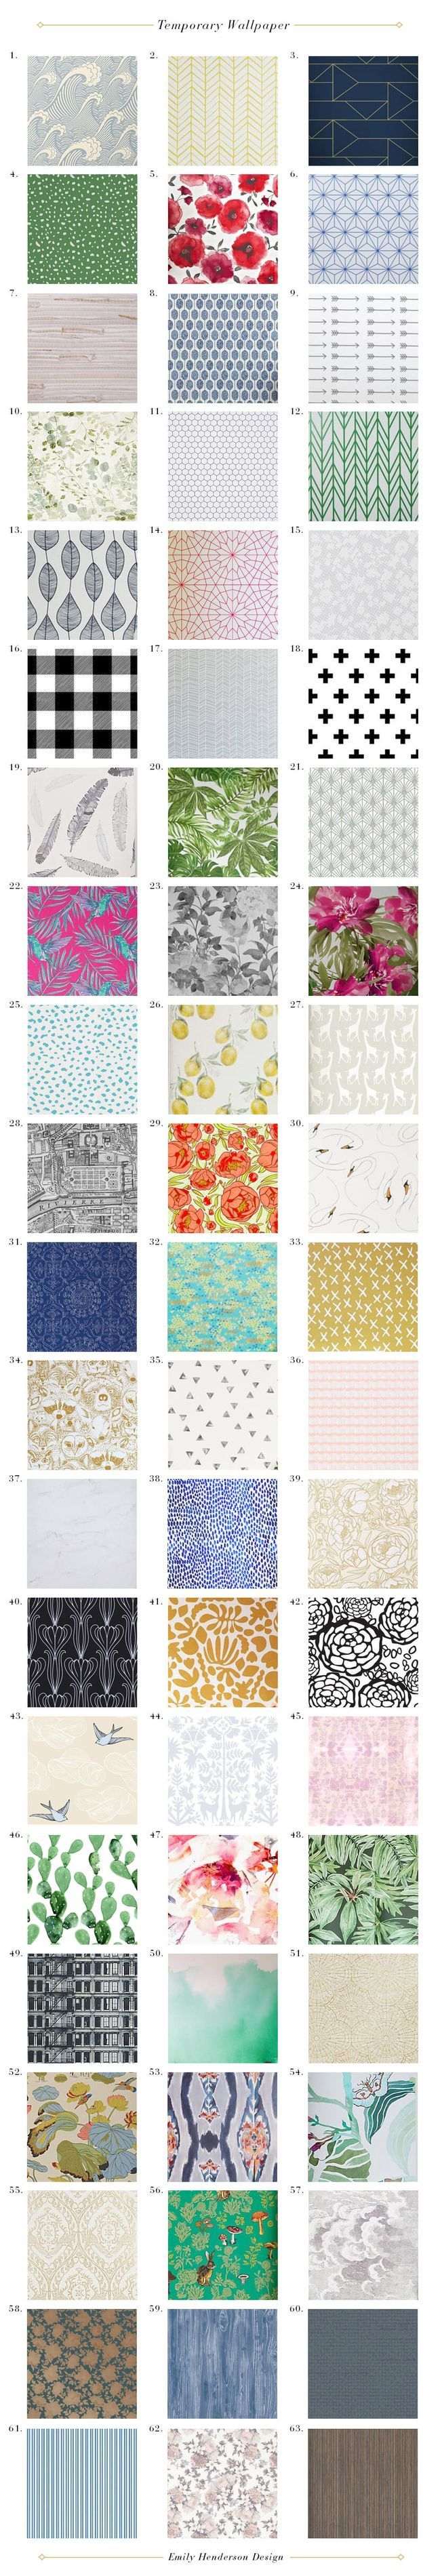 Best 25+ Temporary wallpaper ideas on Pinterest | Removable ...